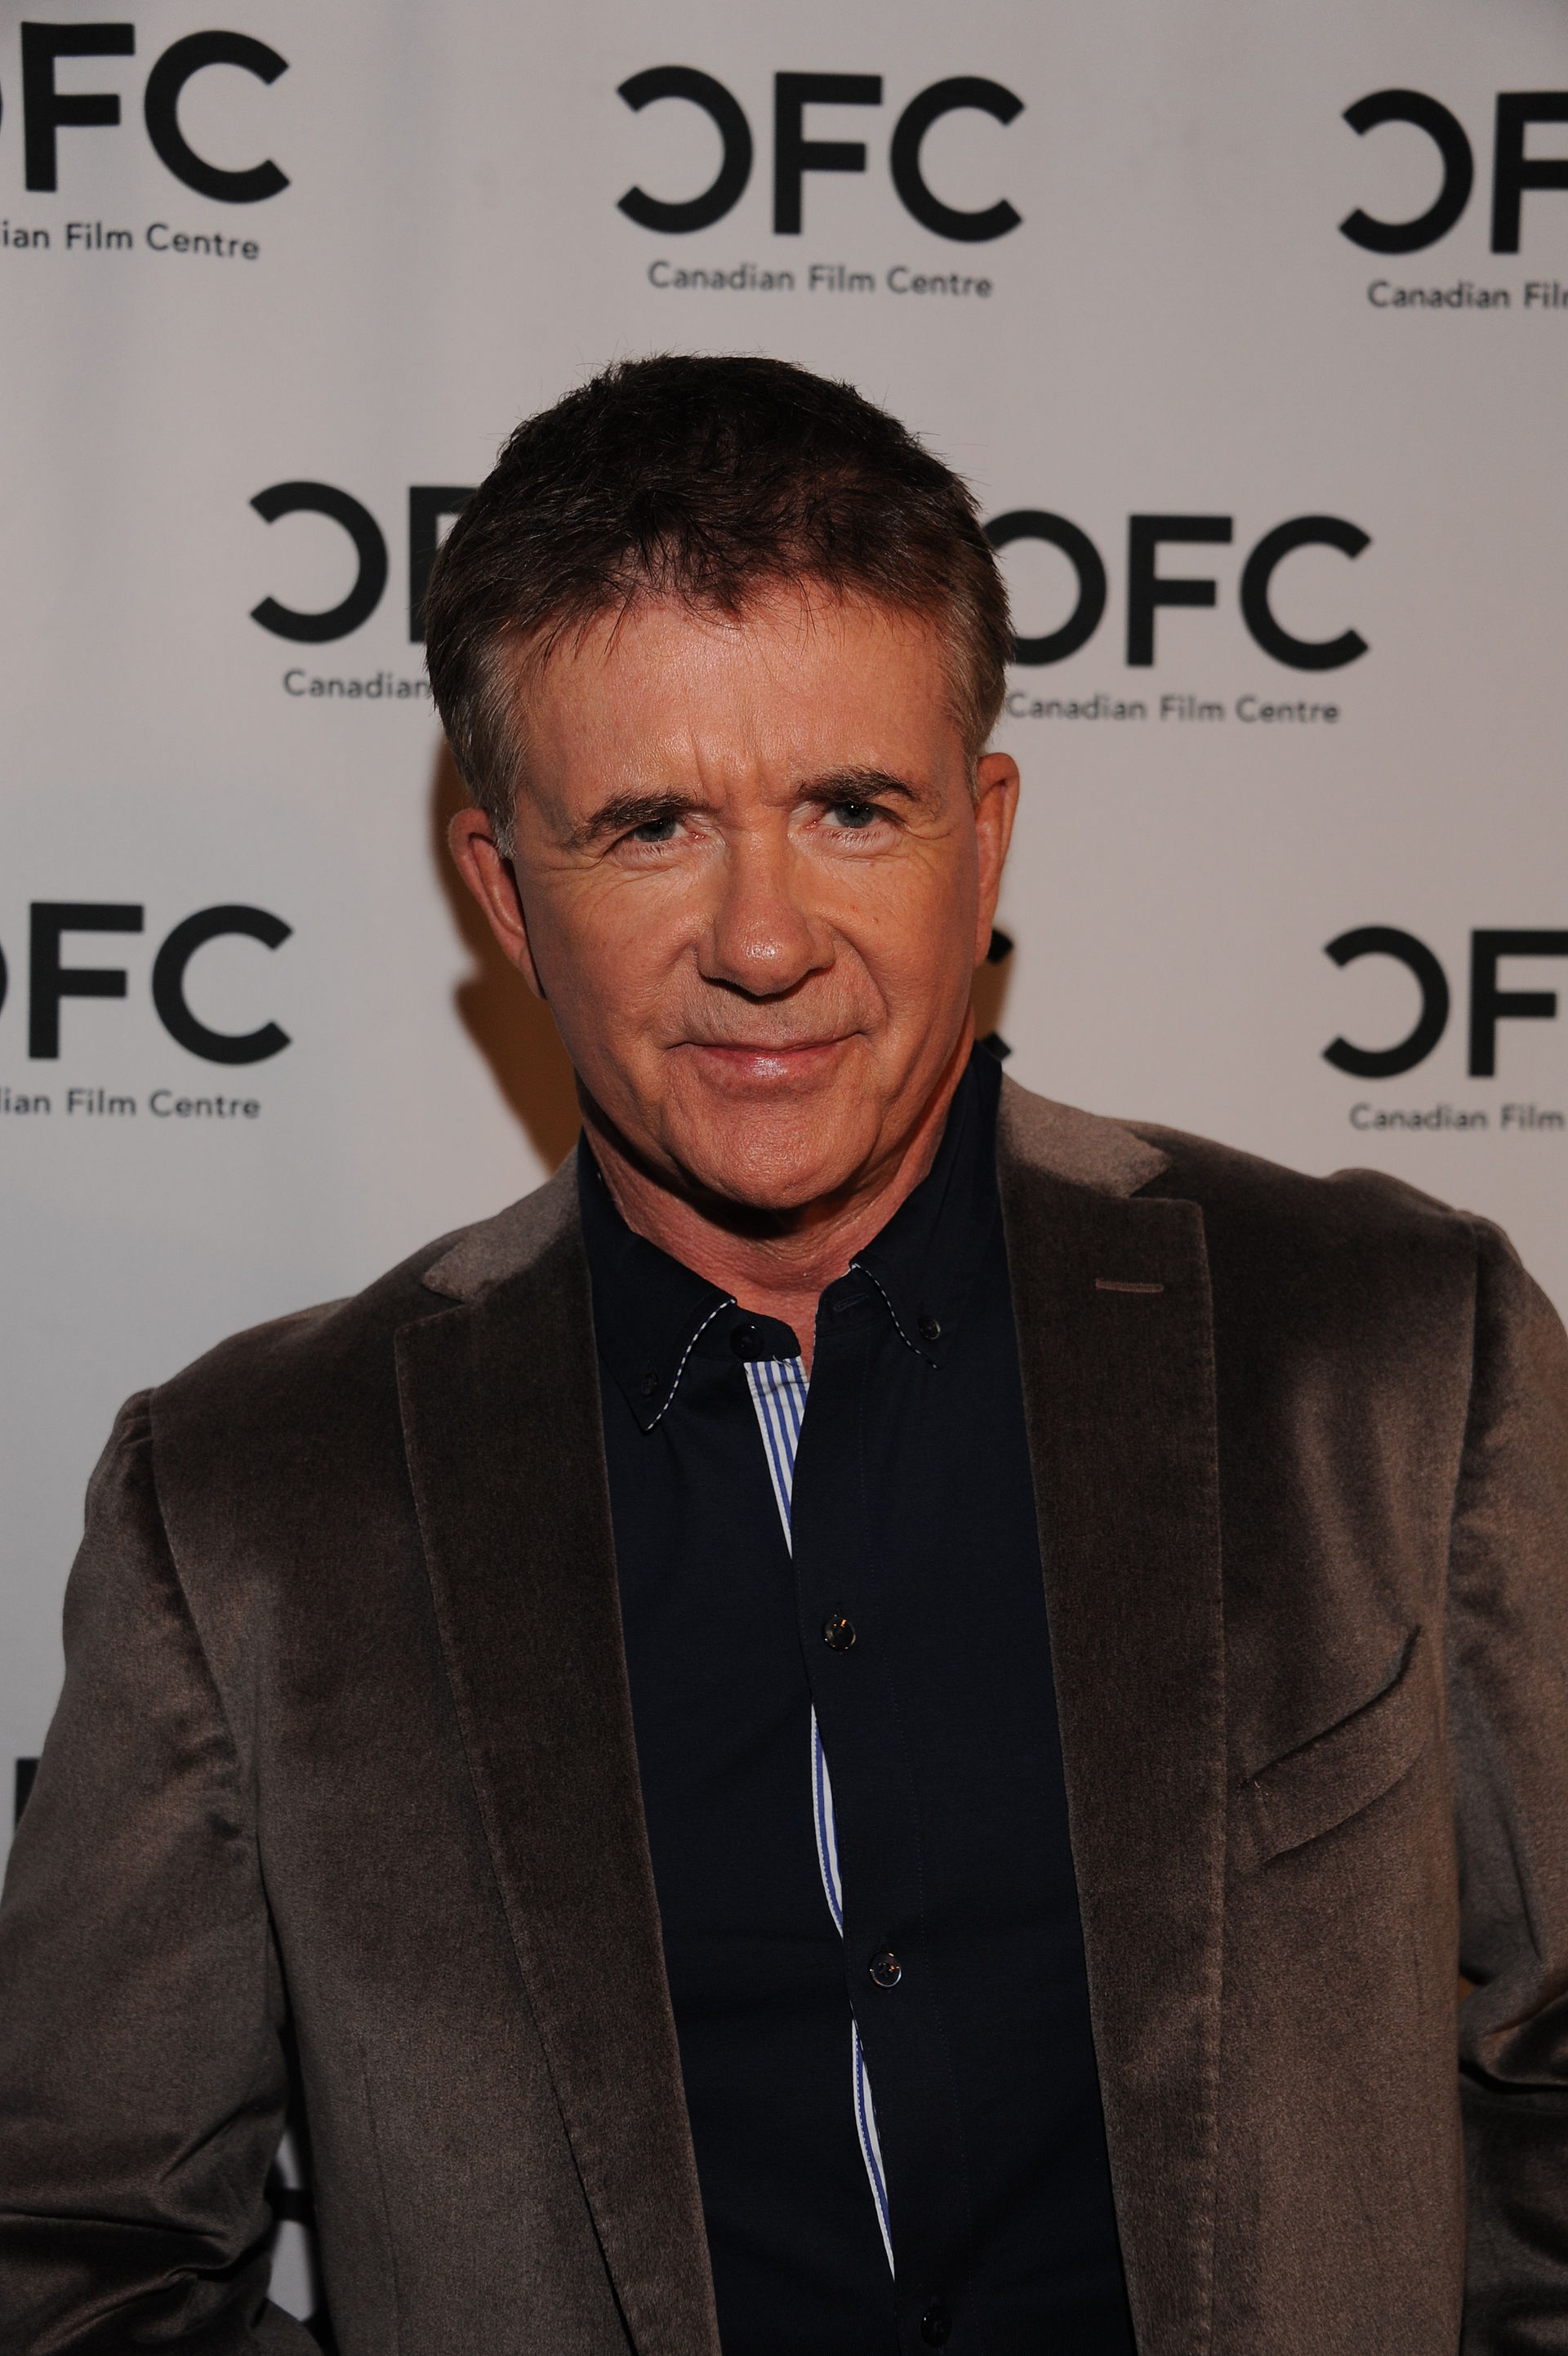 Alan Thicke nudes (36 photos), Pussy, Is a cute, Selfie, cleavage 2006